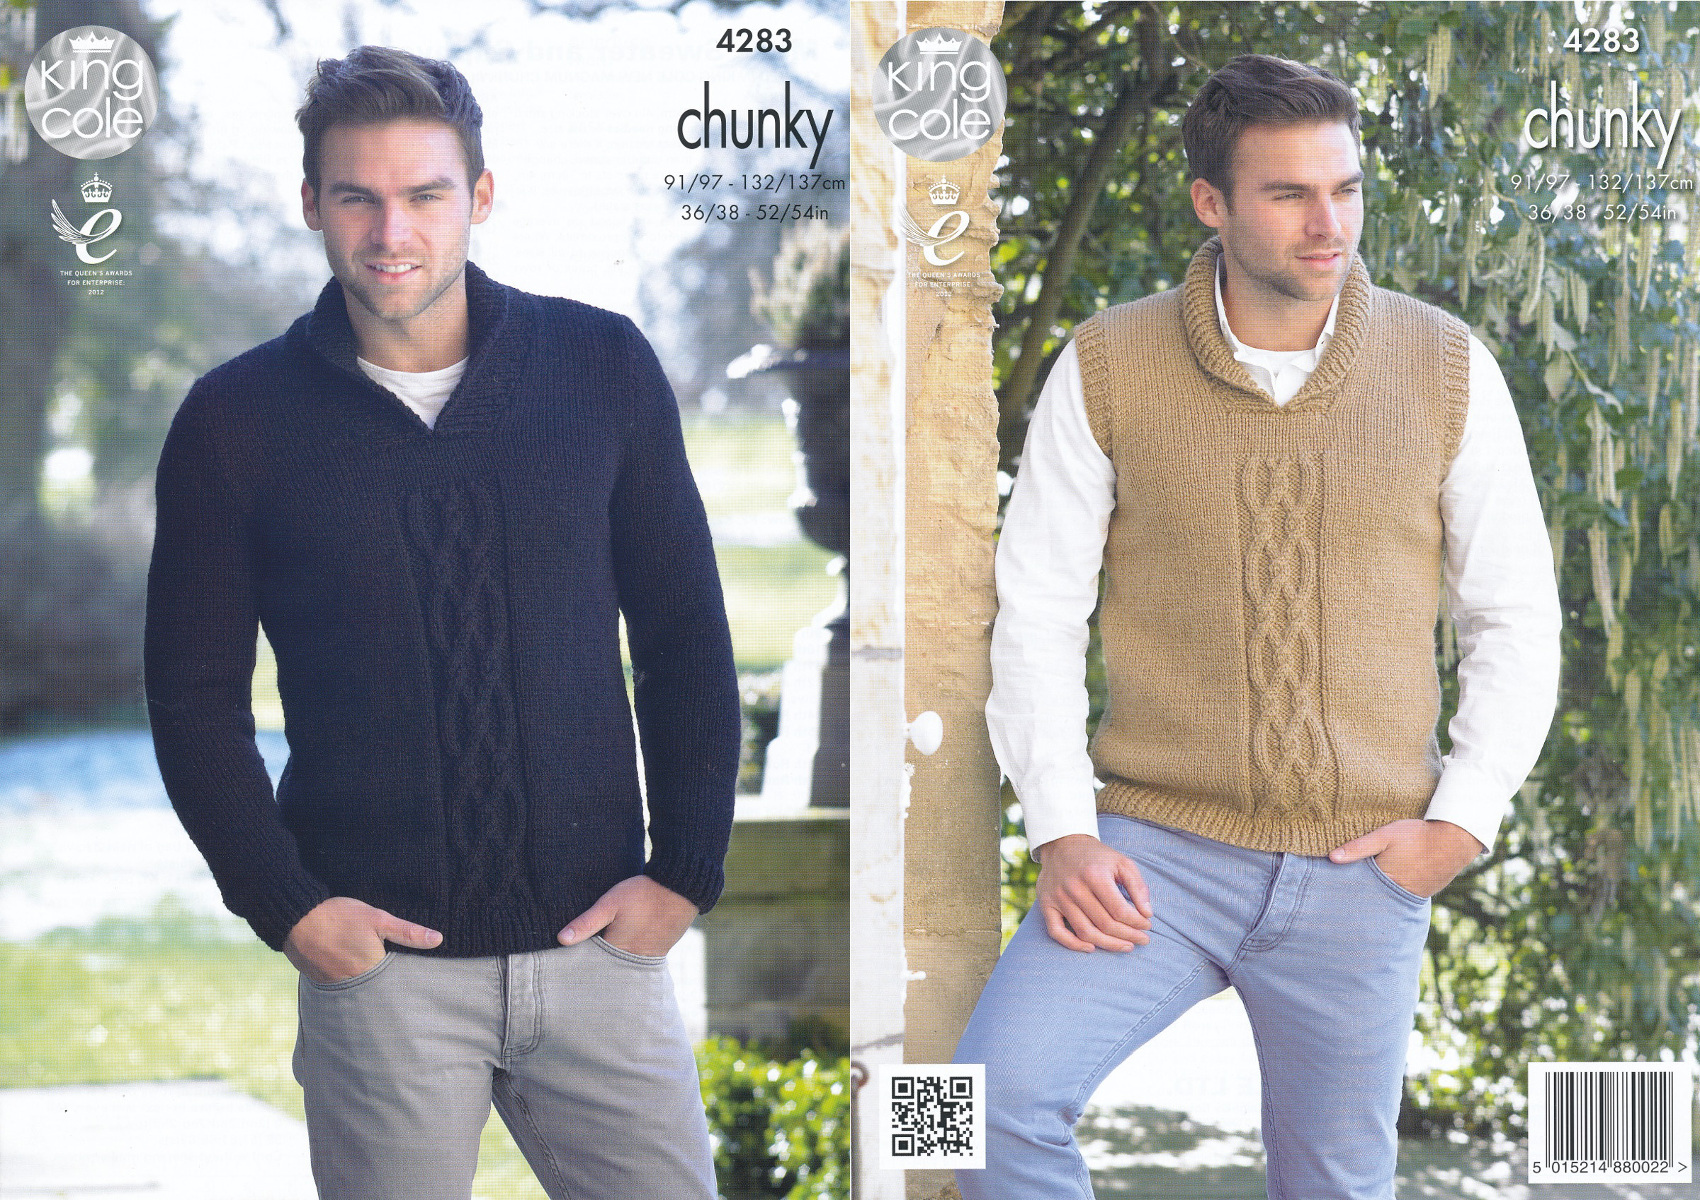 Mens chunky knitting pattern king cole cable knit sweater jumper please look at images below for the chart showing measurements yarn and materials requirement to make this garment bankloansurffo Gallery